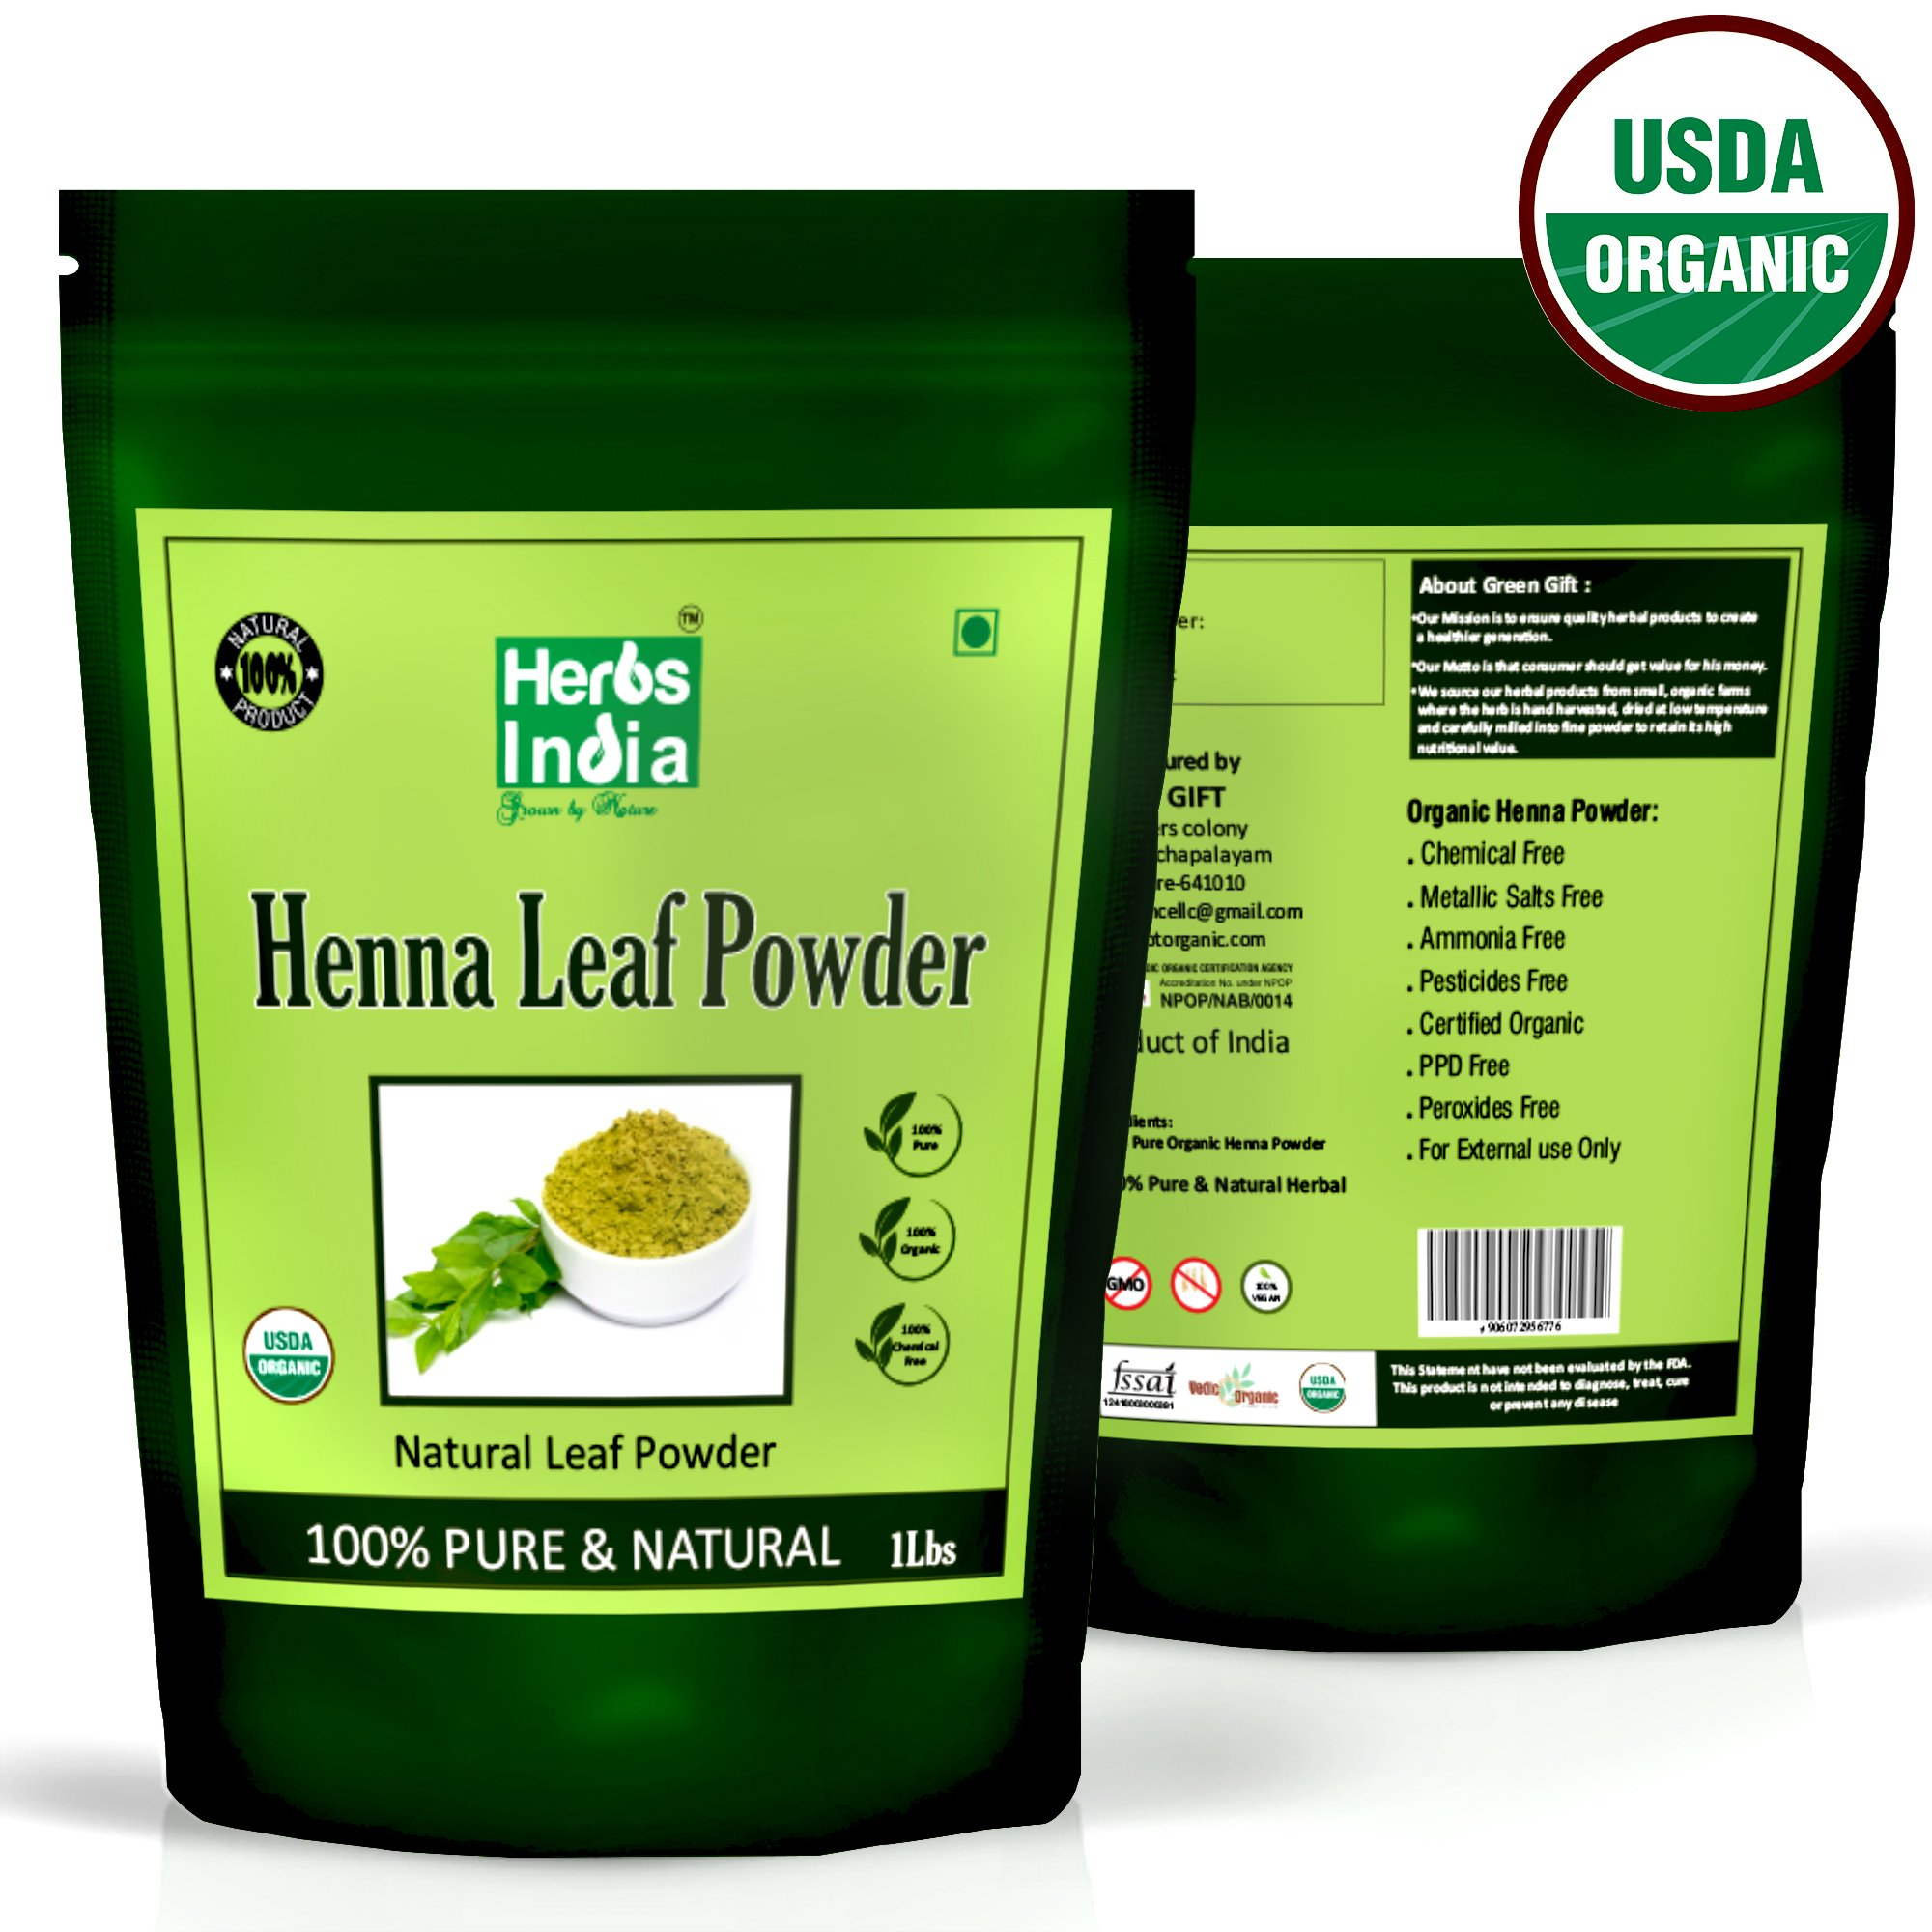 4f281c9f54afe Get Quotations · Organic Henna Powder for Hair 16 Ounces (1 Pound) - USDA  Certified Organic,